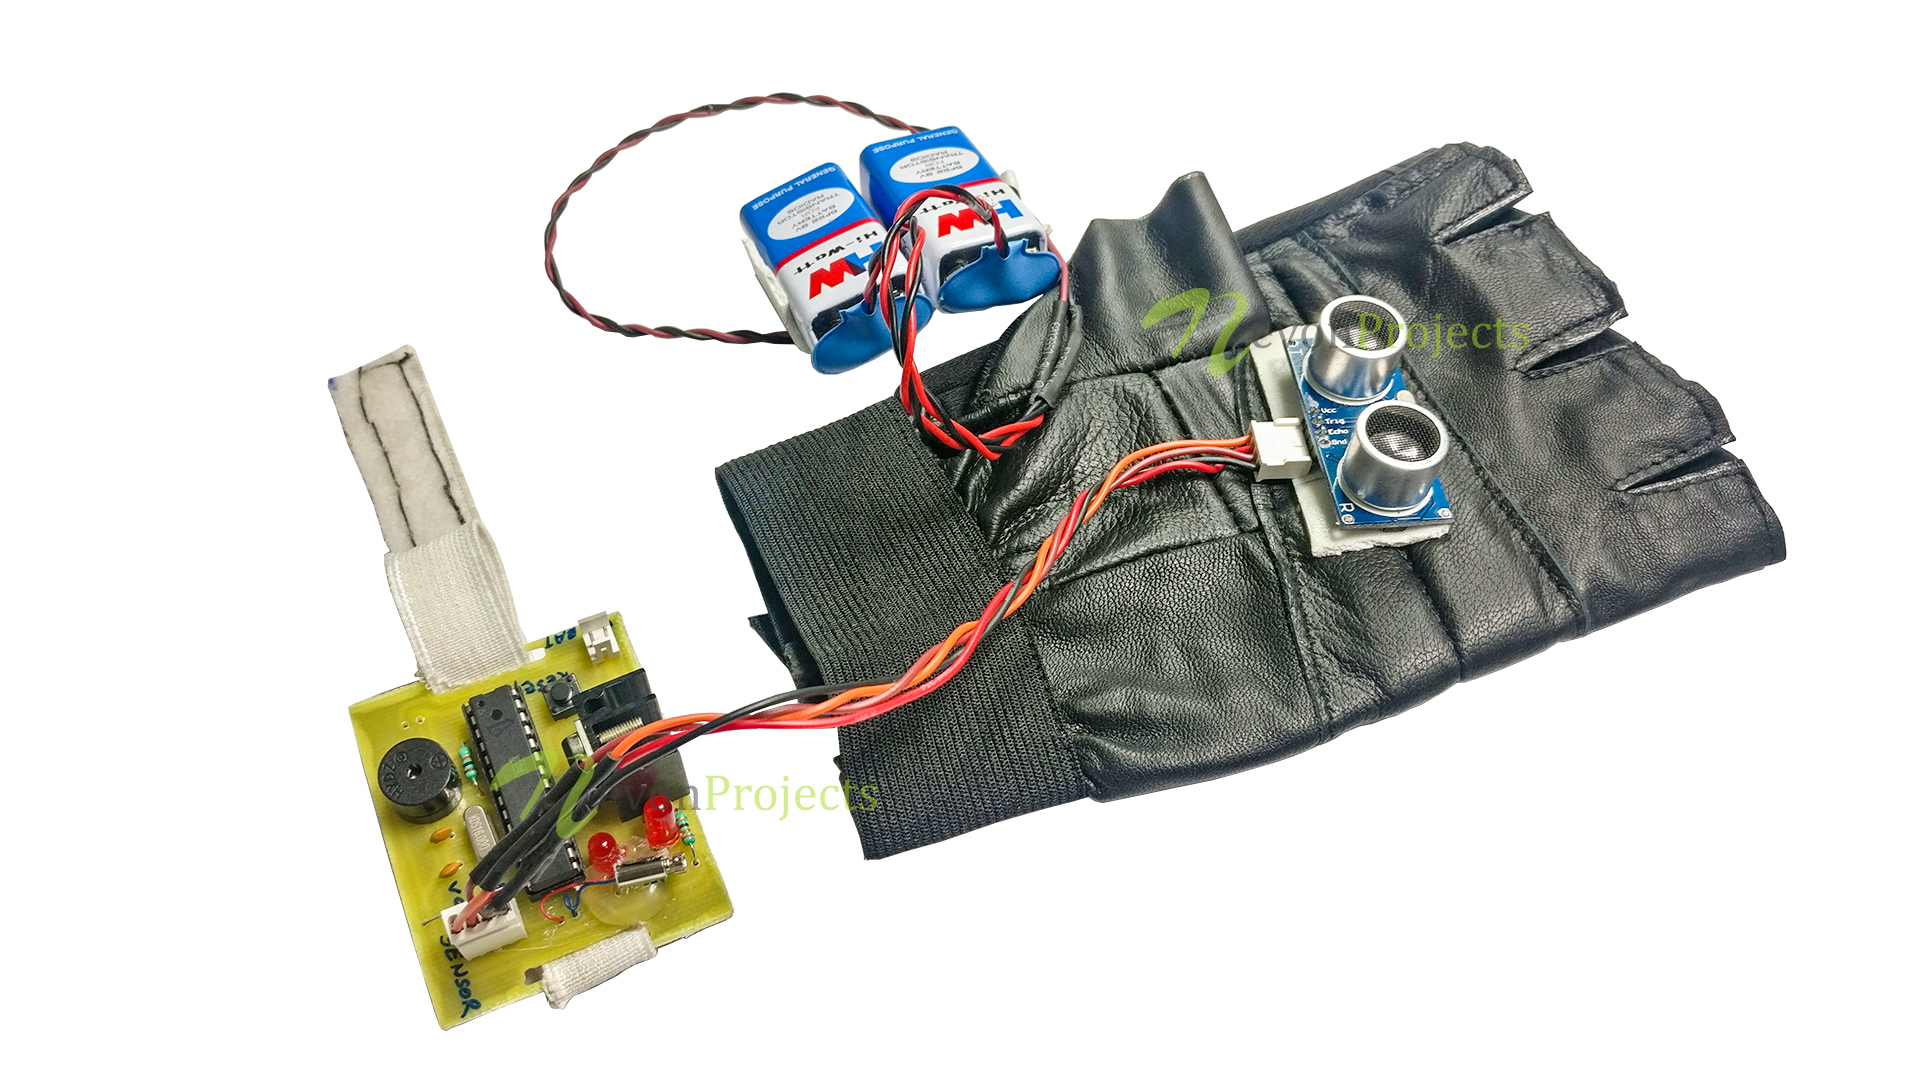 Third Eye For Blind Ultrasonic Vibrator Glove 8051 Microcontroller Rangefinder Using Circuit Diagram The With Vibrating Is Designed To Help Overcome Lack Of Visual Sense By Other Senses Like